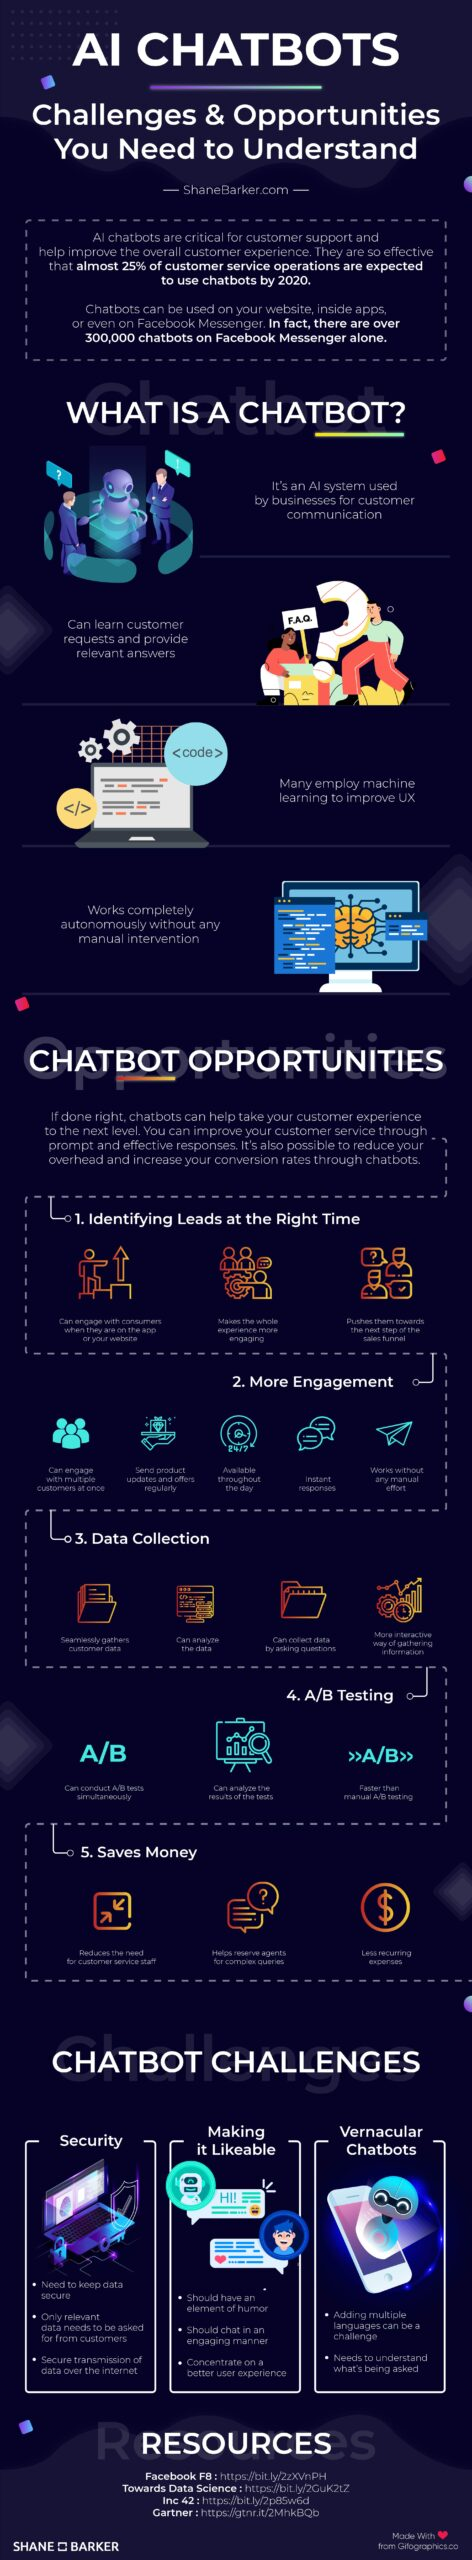 AI Chatbots Challenges and Opportunities You Need to Understand